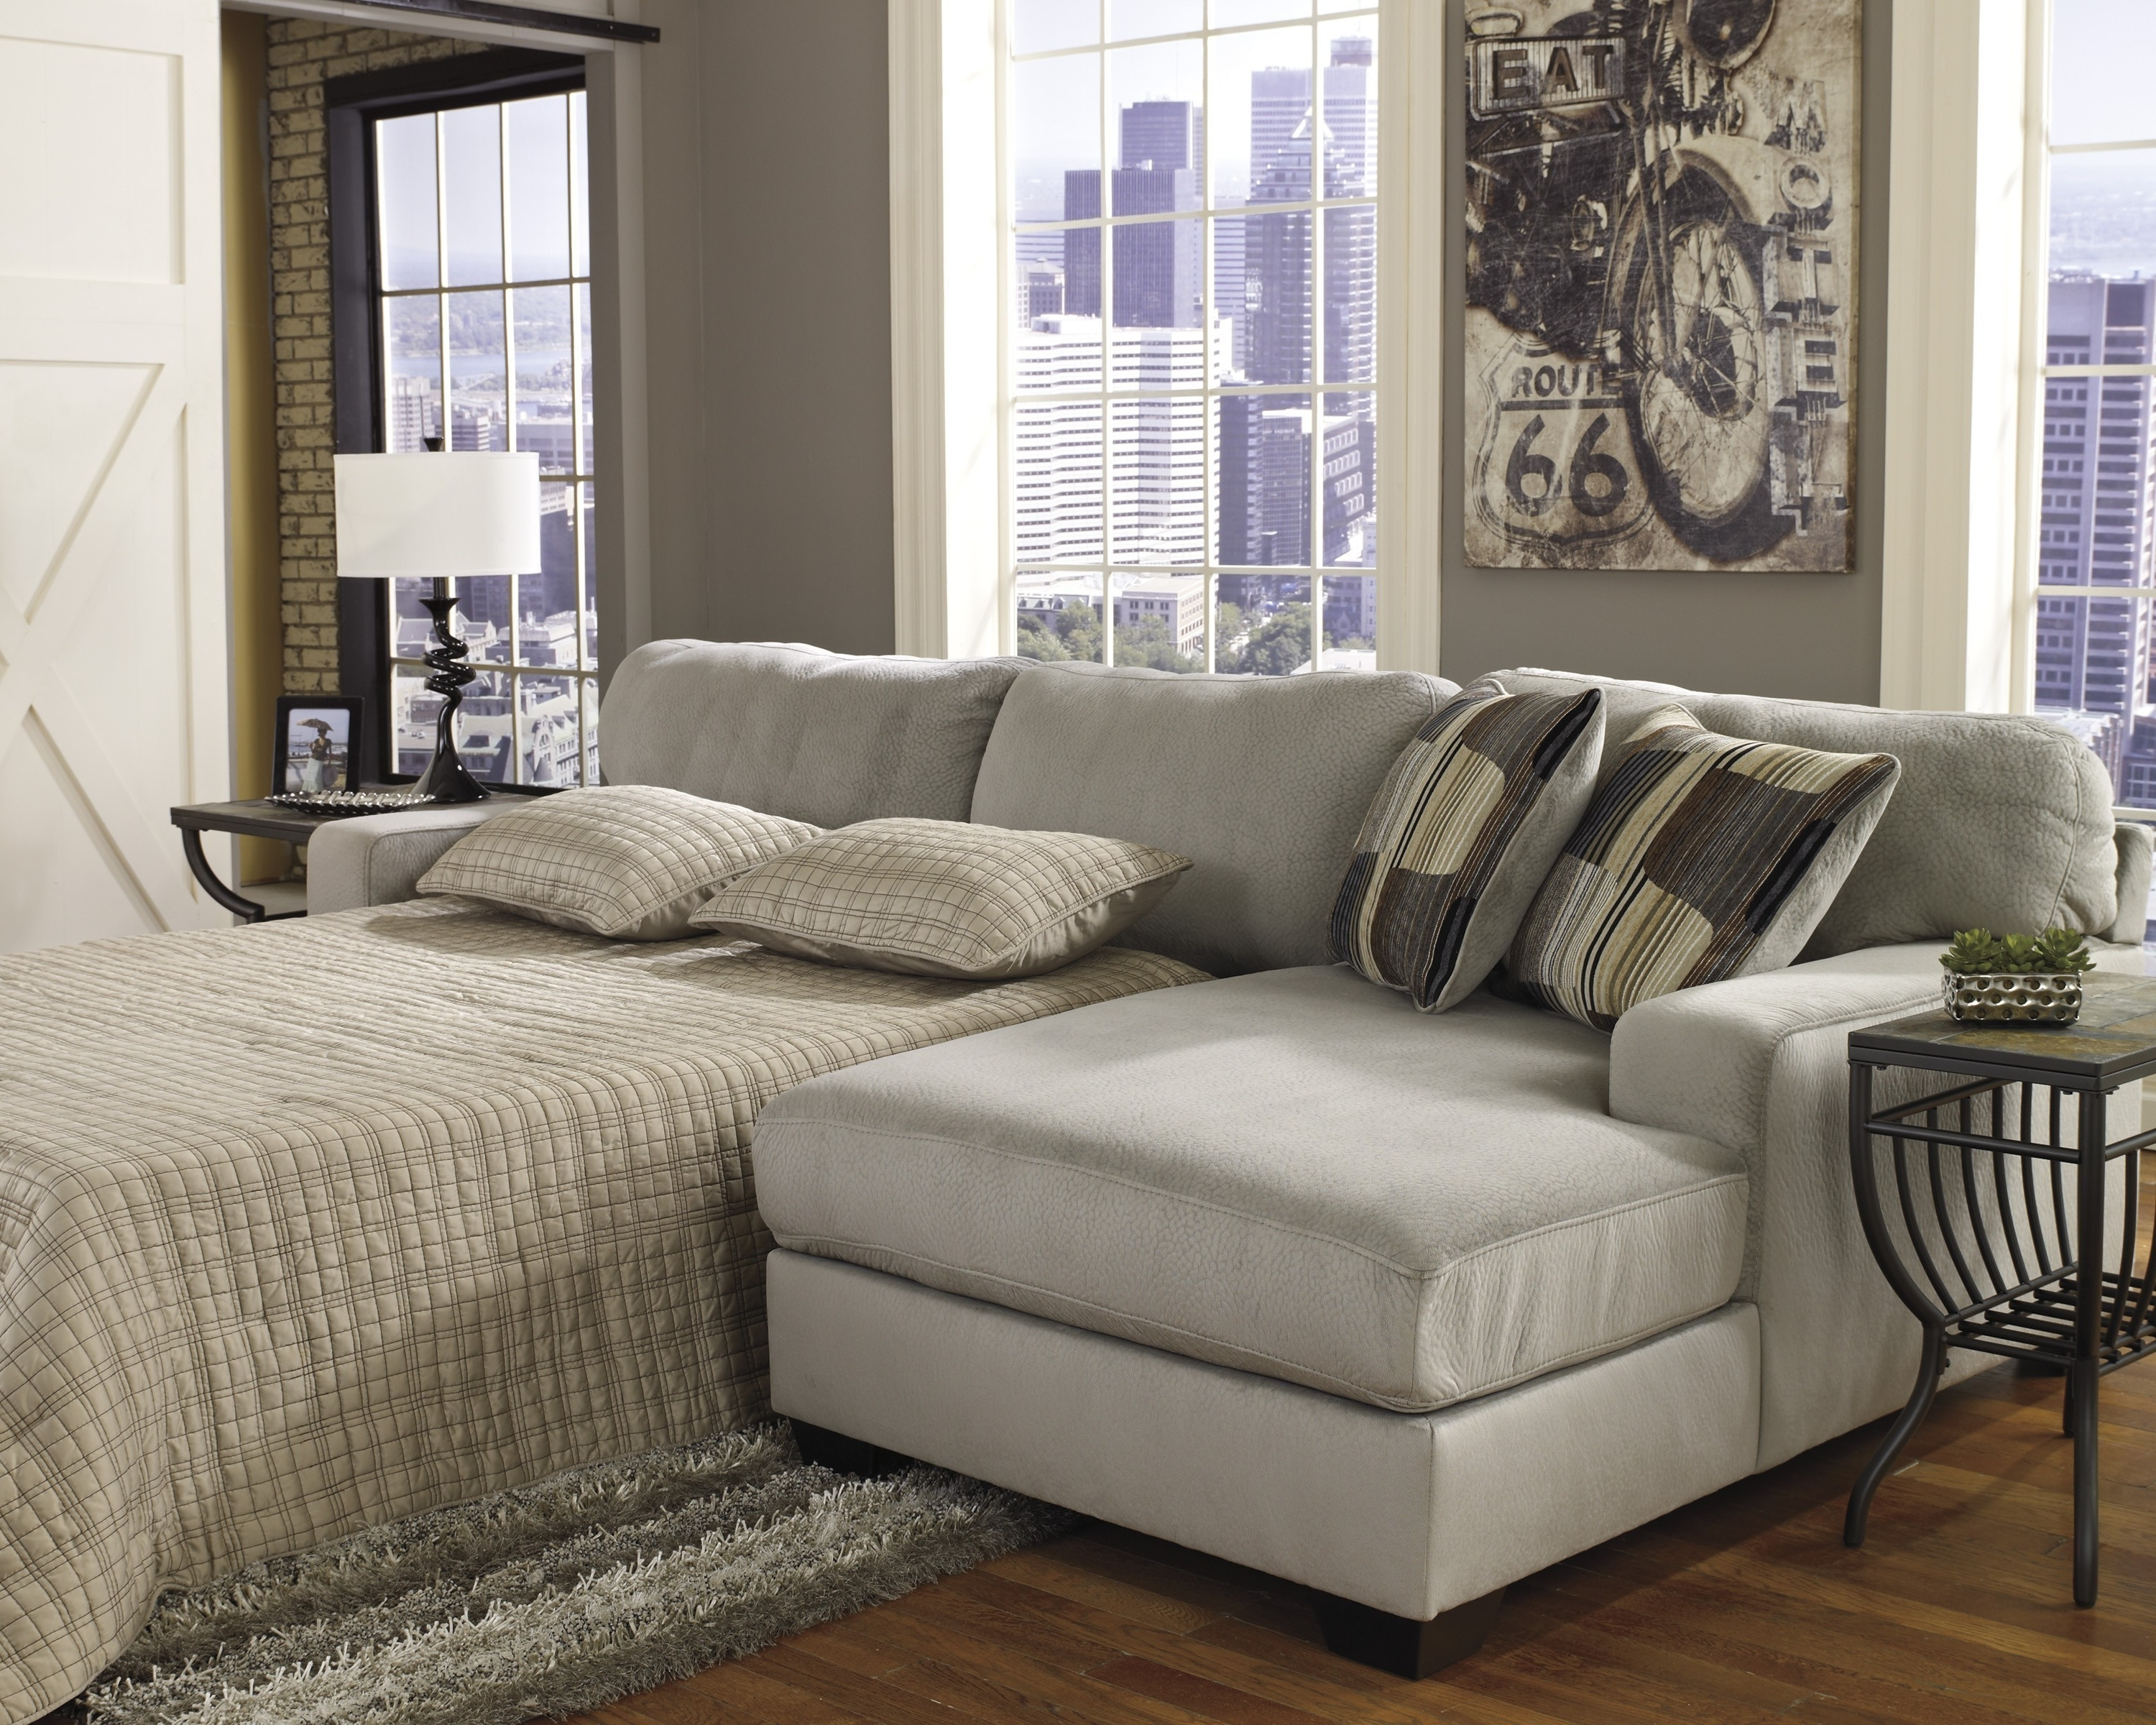 Popular Interesting Sleeper Sectional Sofa With Chaise Simple Home Design With Regard To Leather Sectional Sleeper Sofas With Chaise (View 11 of 15)